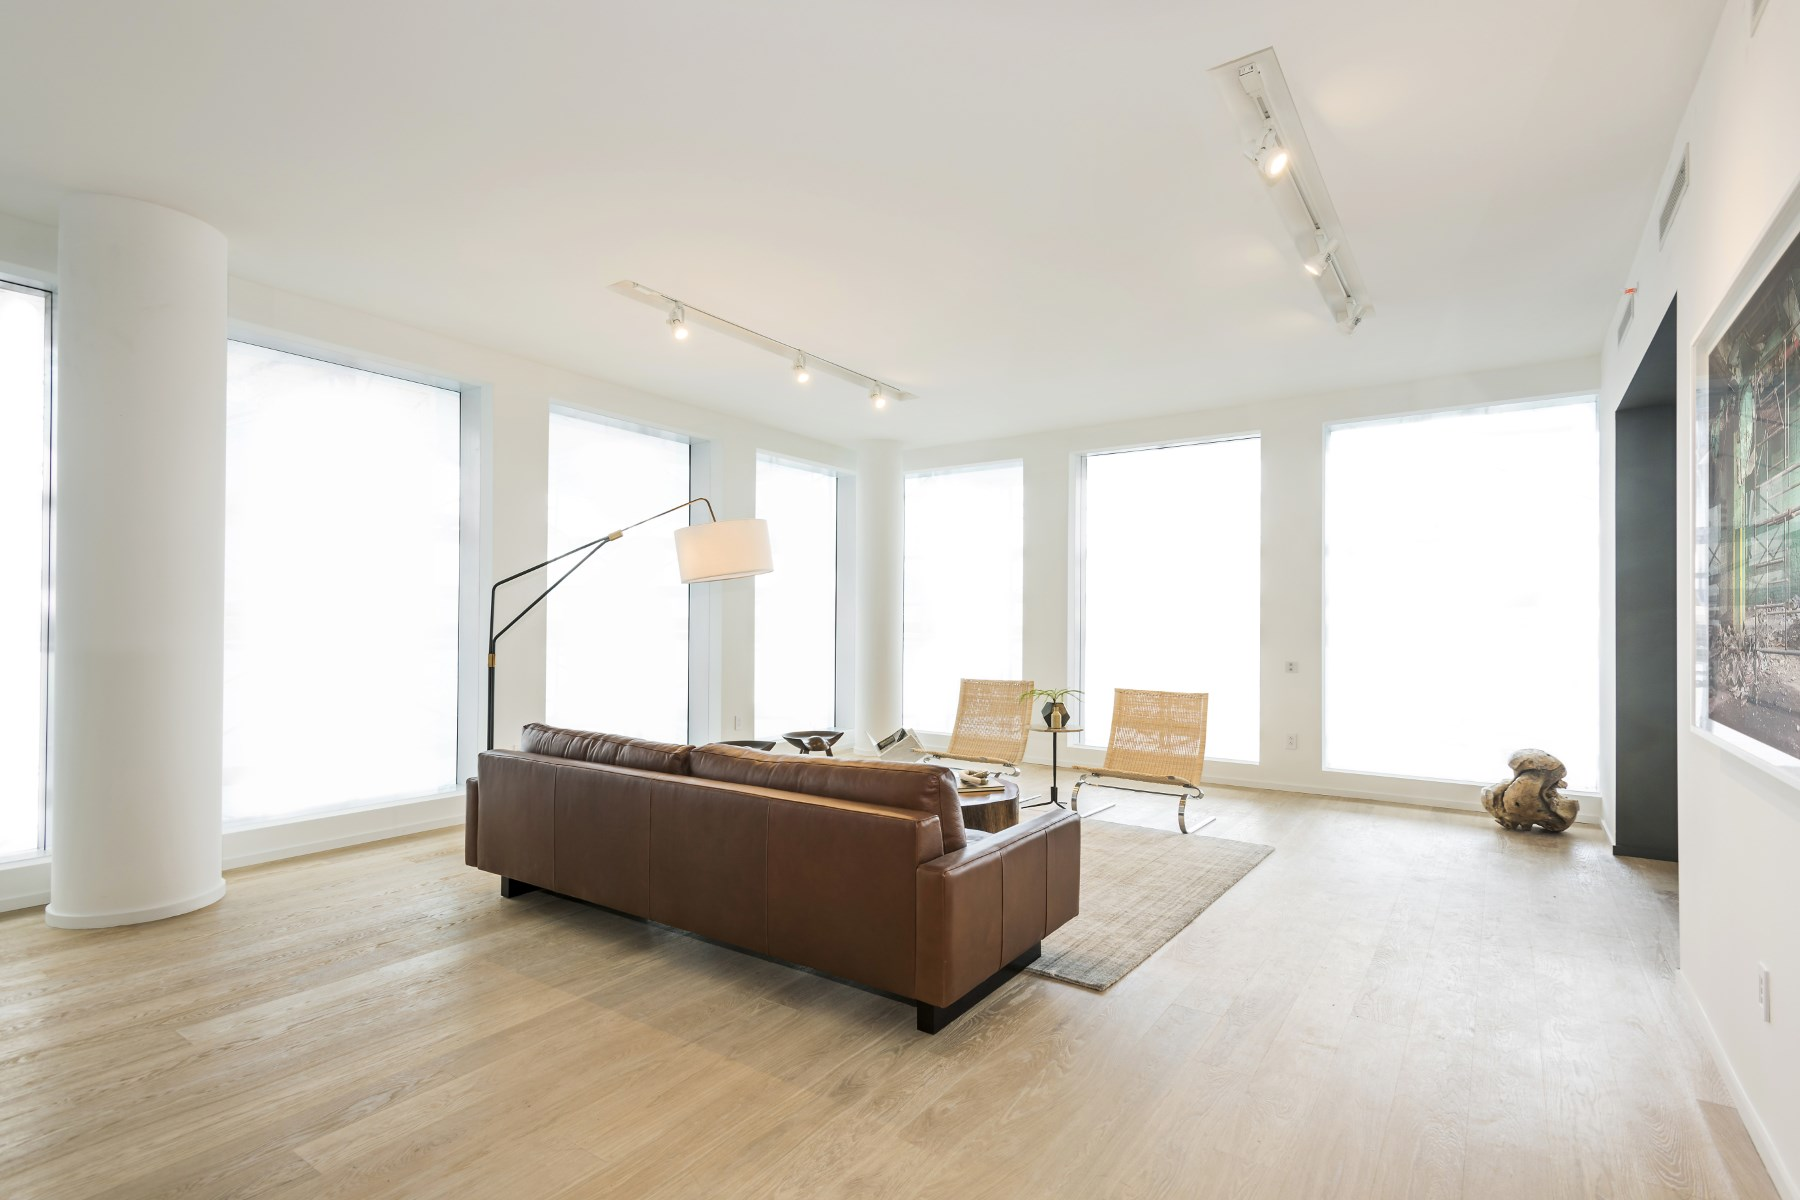 Property For Sale at 1 John Street, Unit 10B